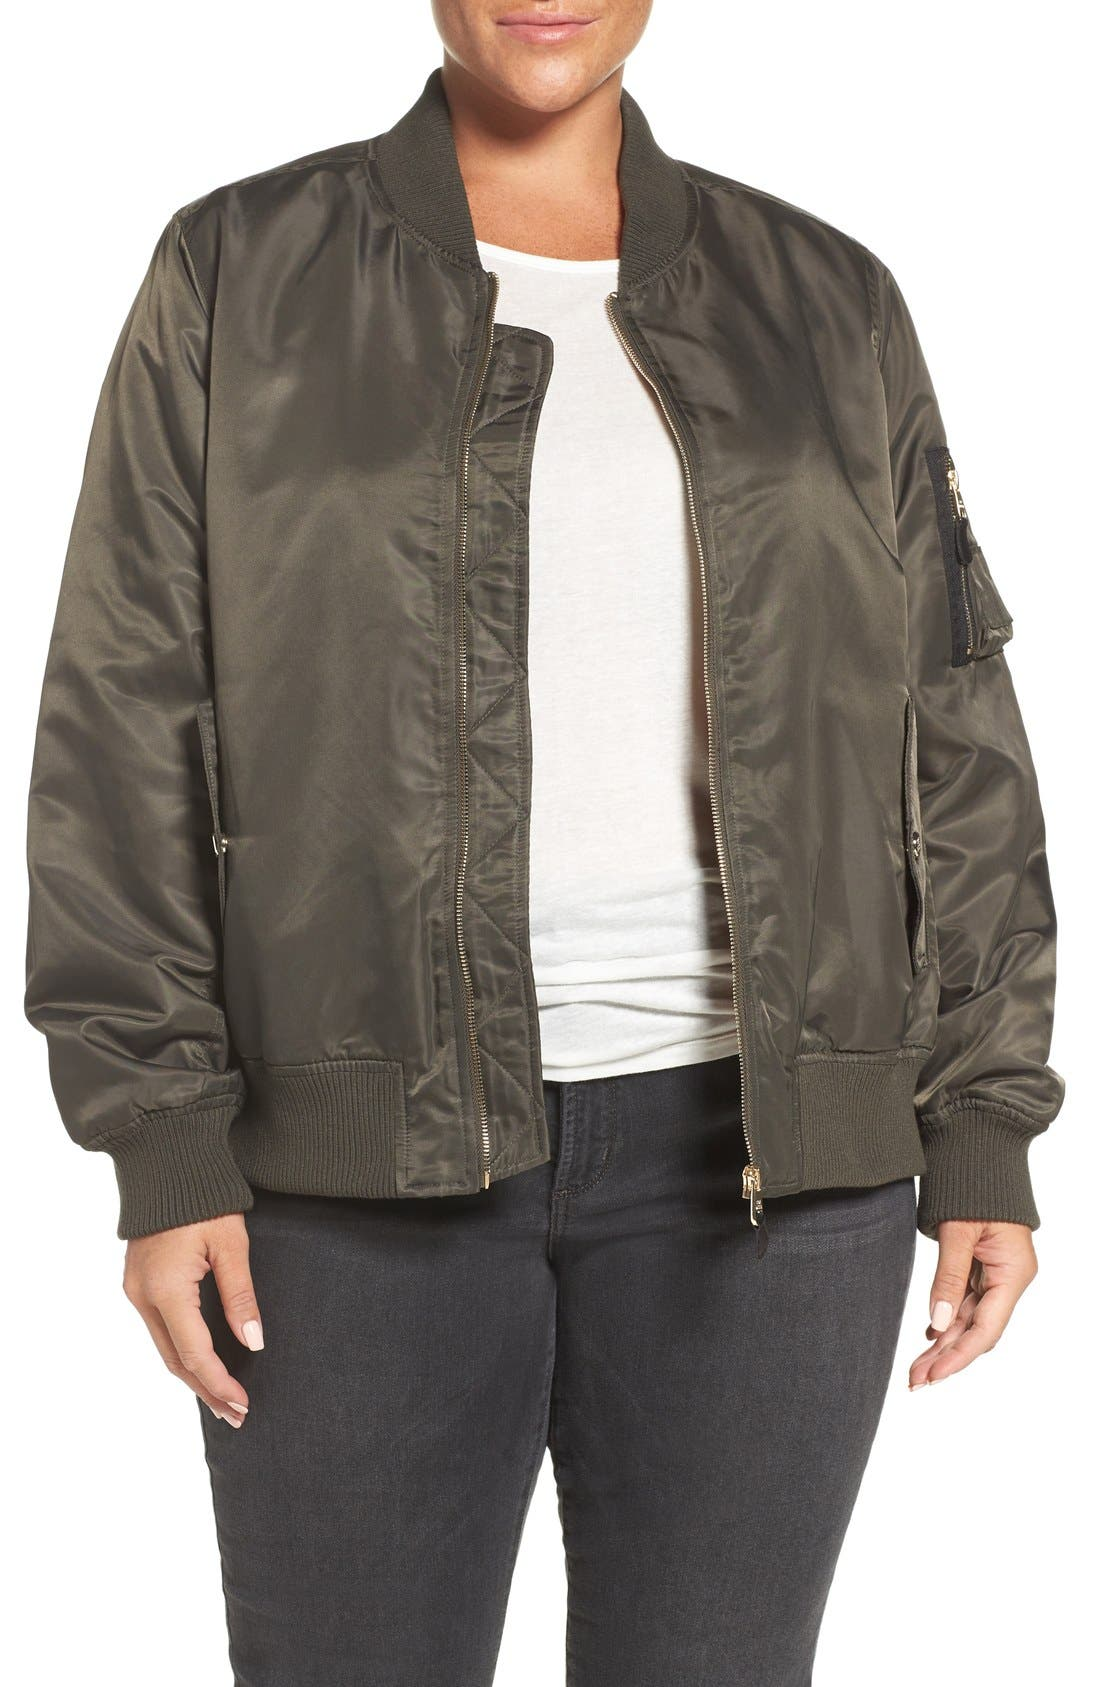 Steve Madden Flight Side Zip Bomber Jacket (Plus Size)